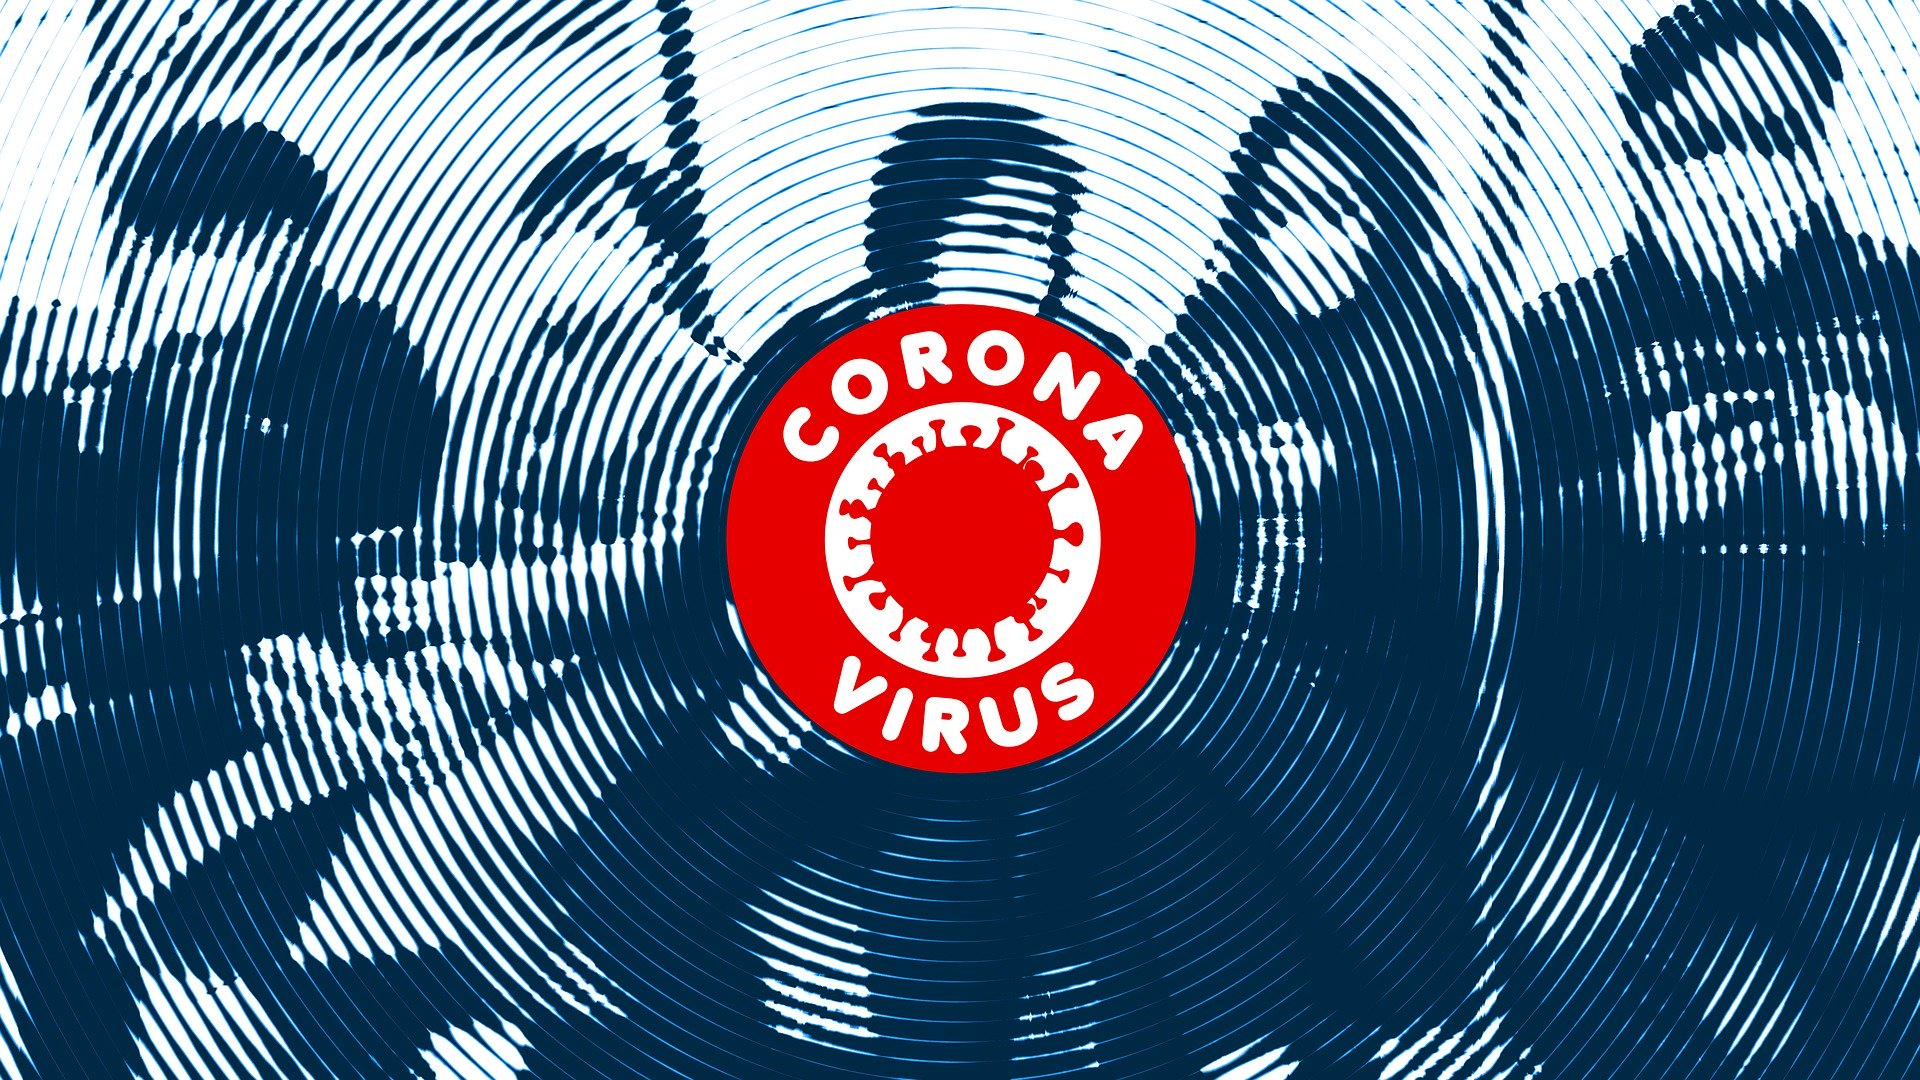 Coronavirus/ Covid-19- Important tips and precautions for safety